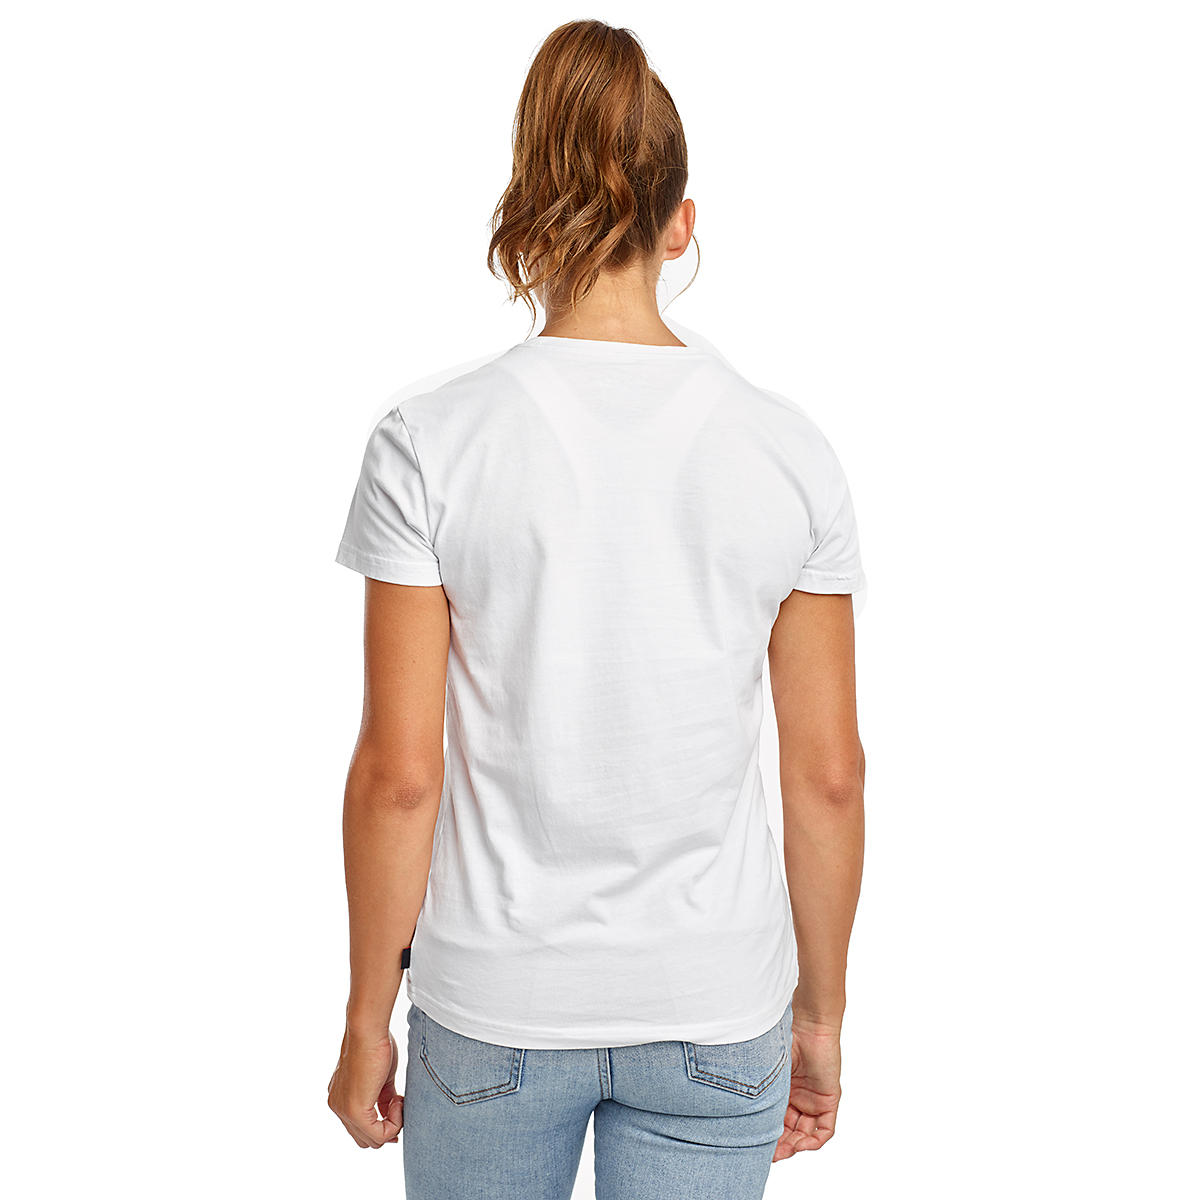 Women's Saucony Rested Short Sleeve - Color: White - Size: XXS, White, large, image 2